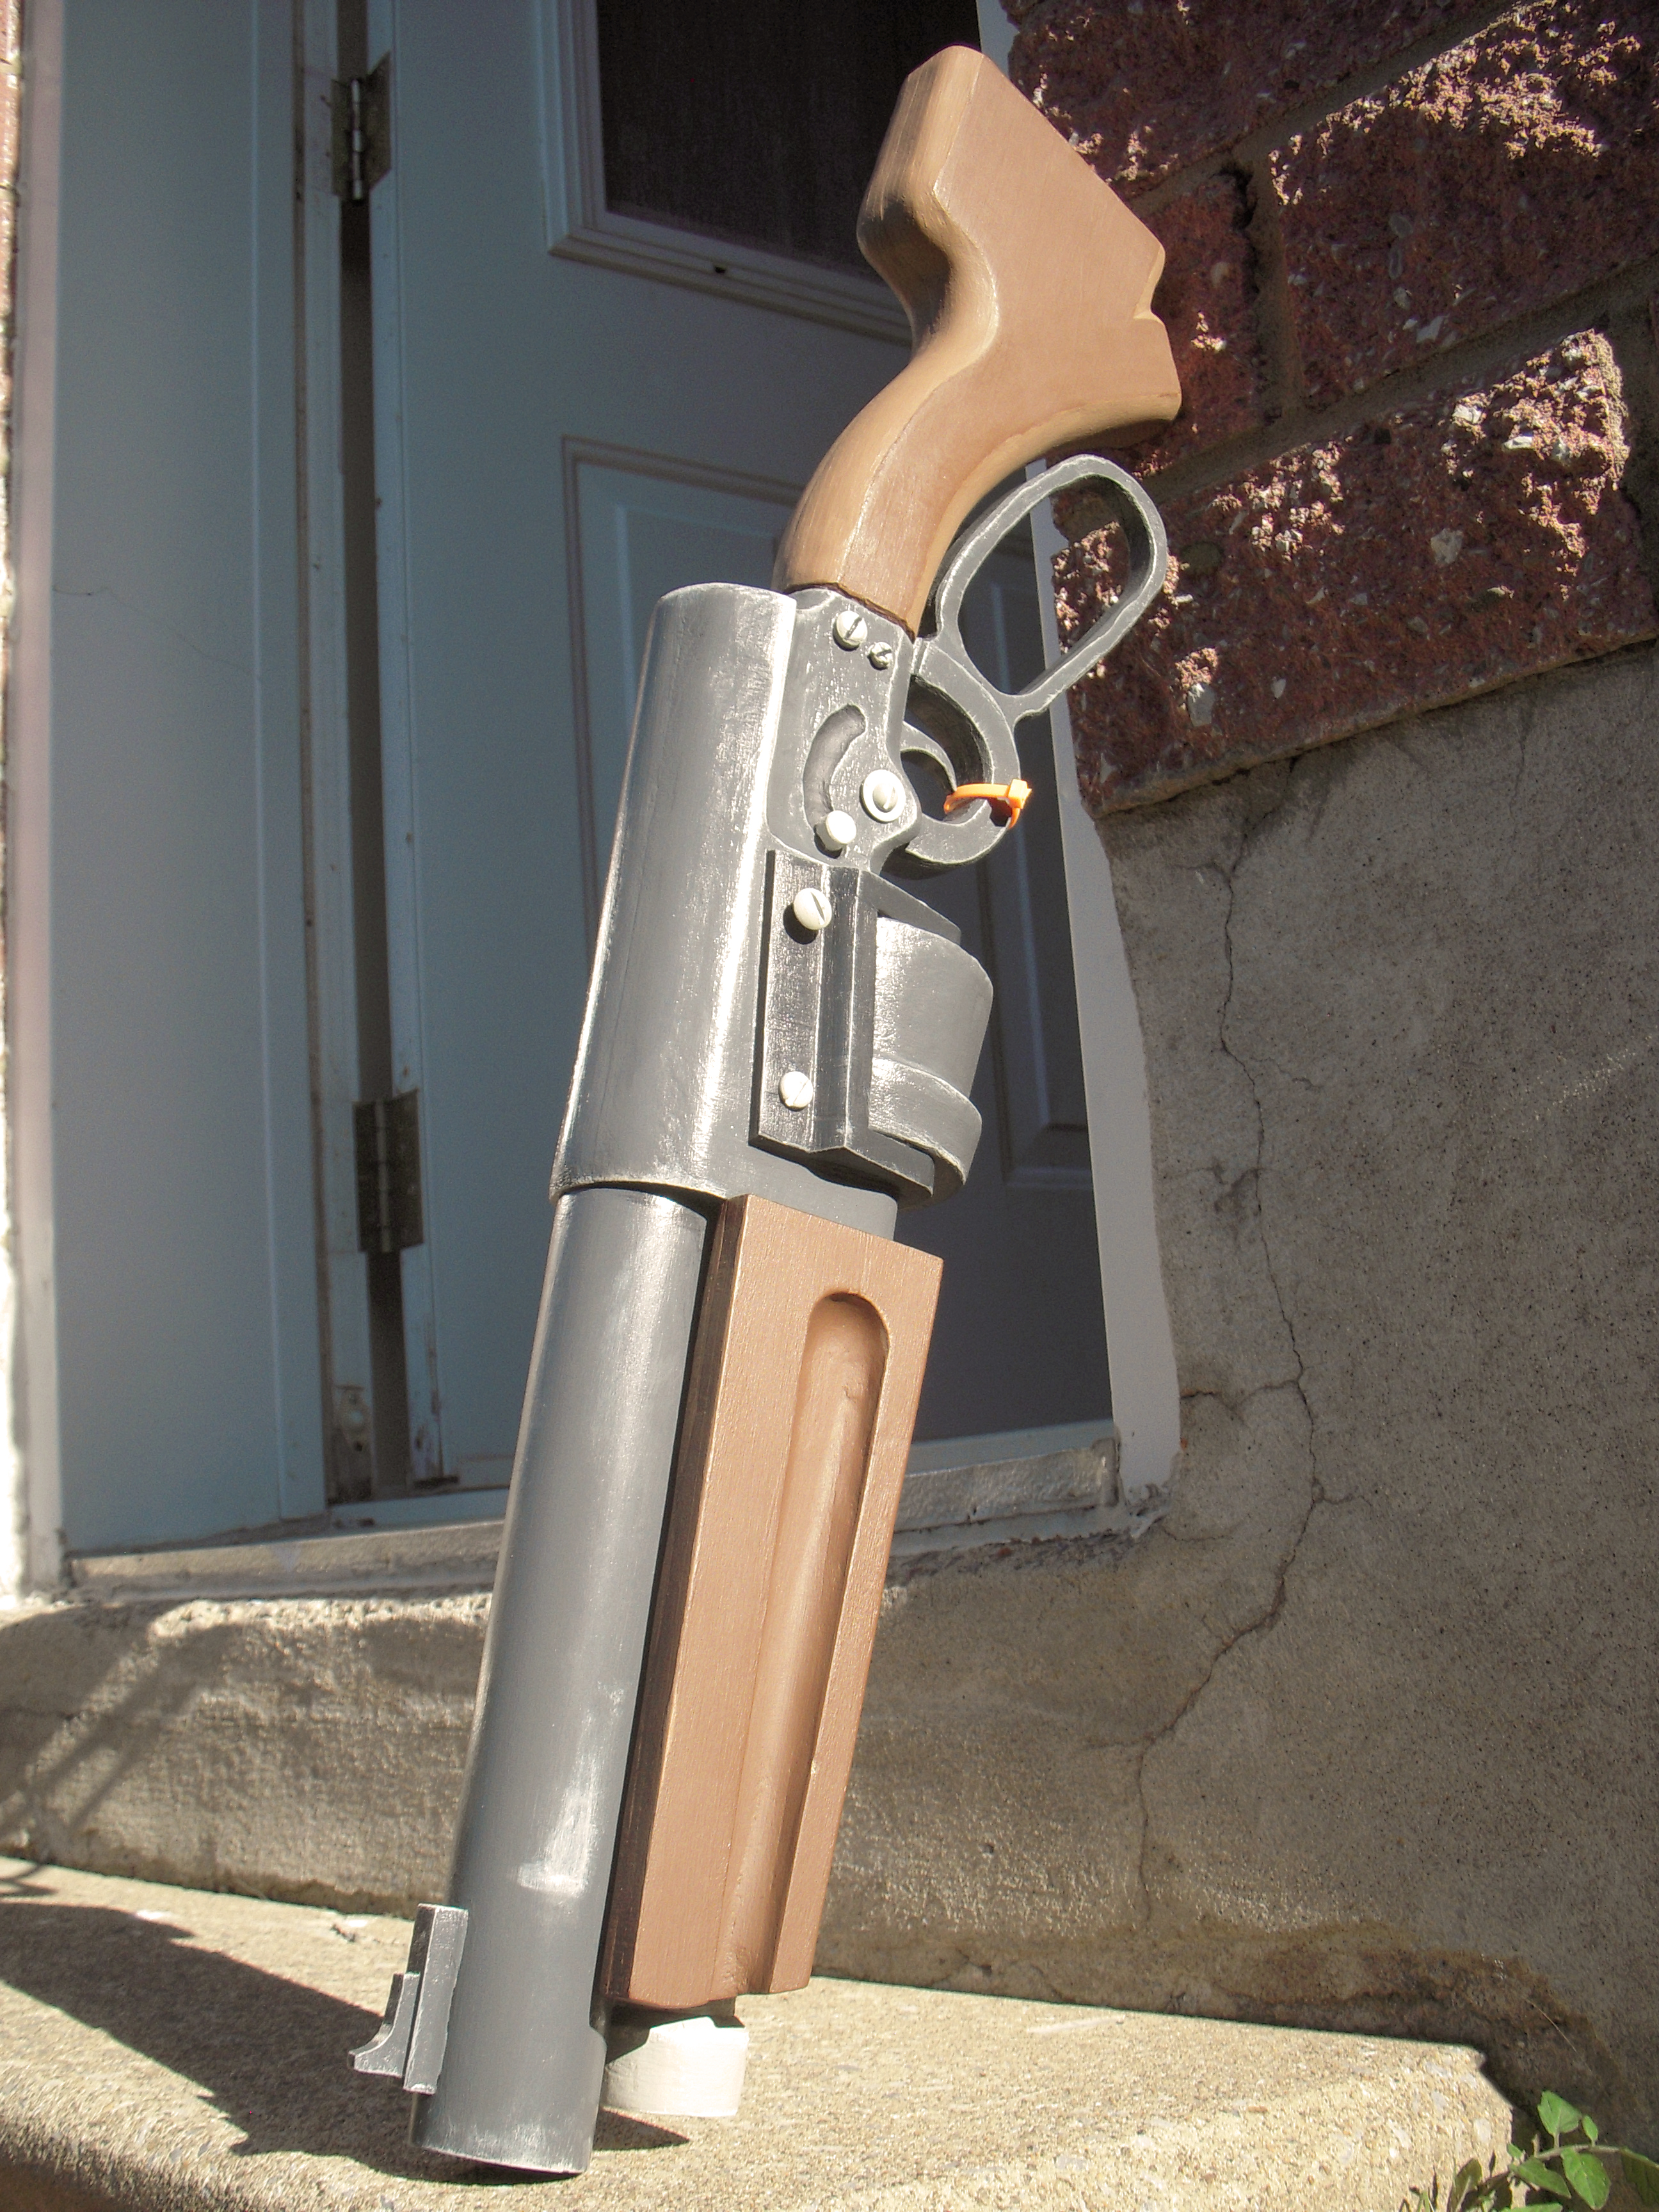 Leave the guns outside. by Raxater